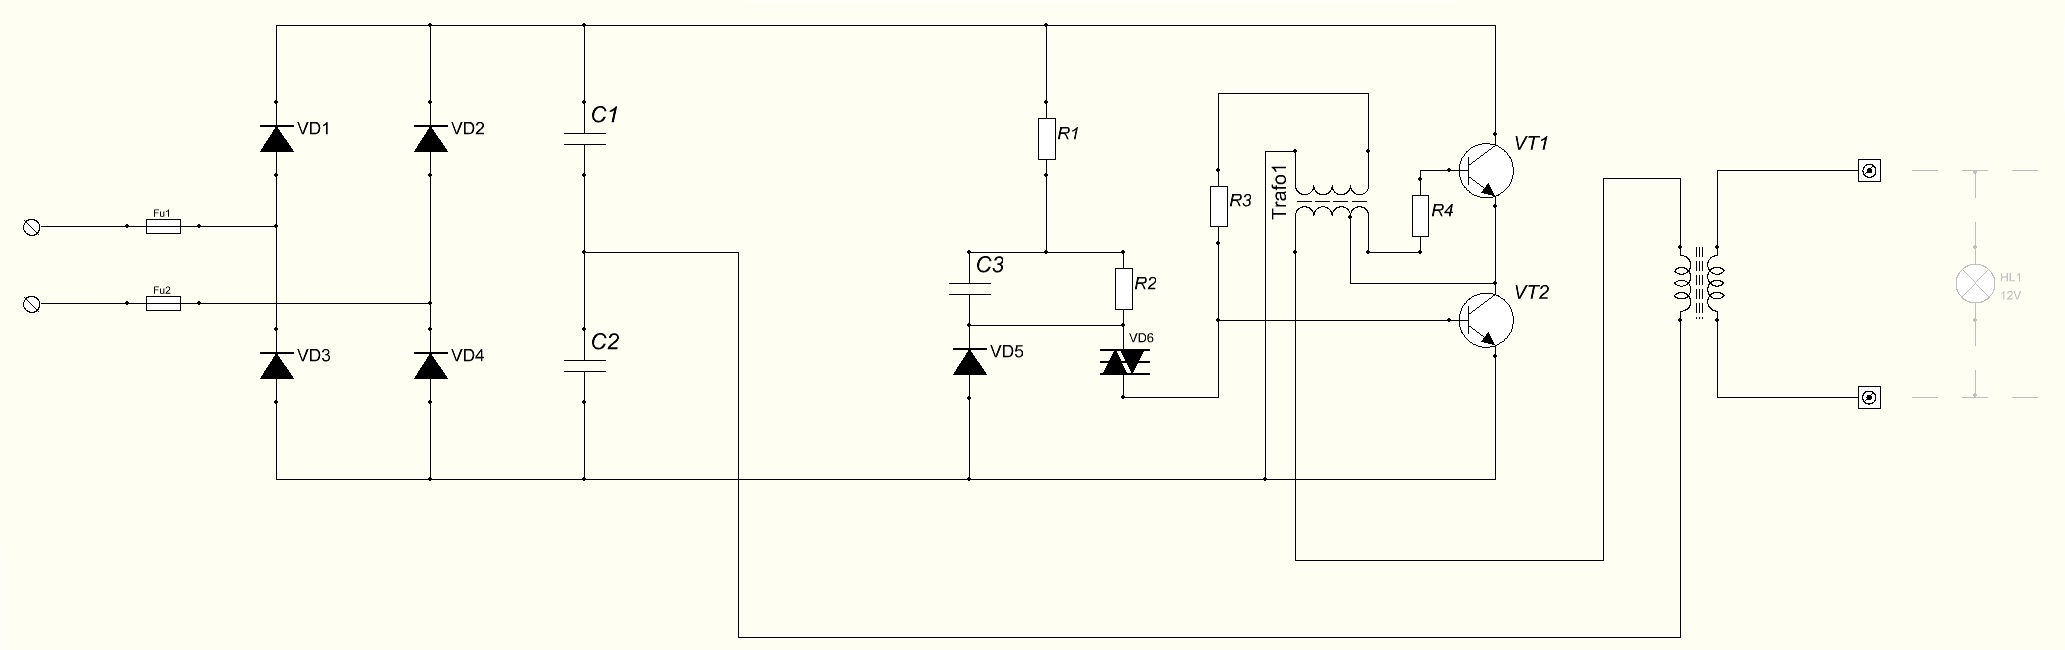 Wiring_diagram_of_power_supply_for_halogen_lamps file wiring diagram of power supply for halogen lamps jpg halogen light wiring diagram at readyjetset.co